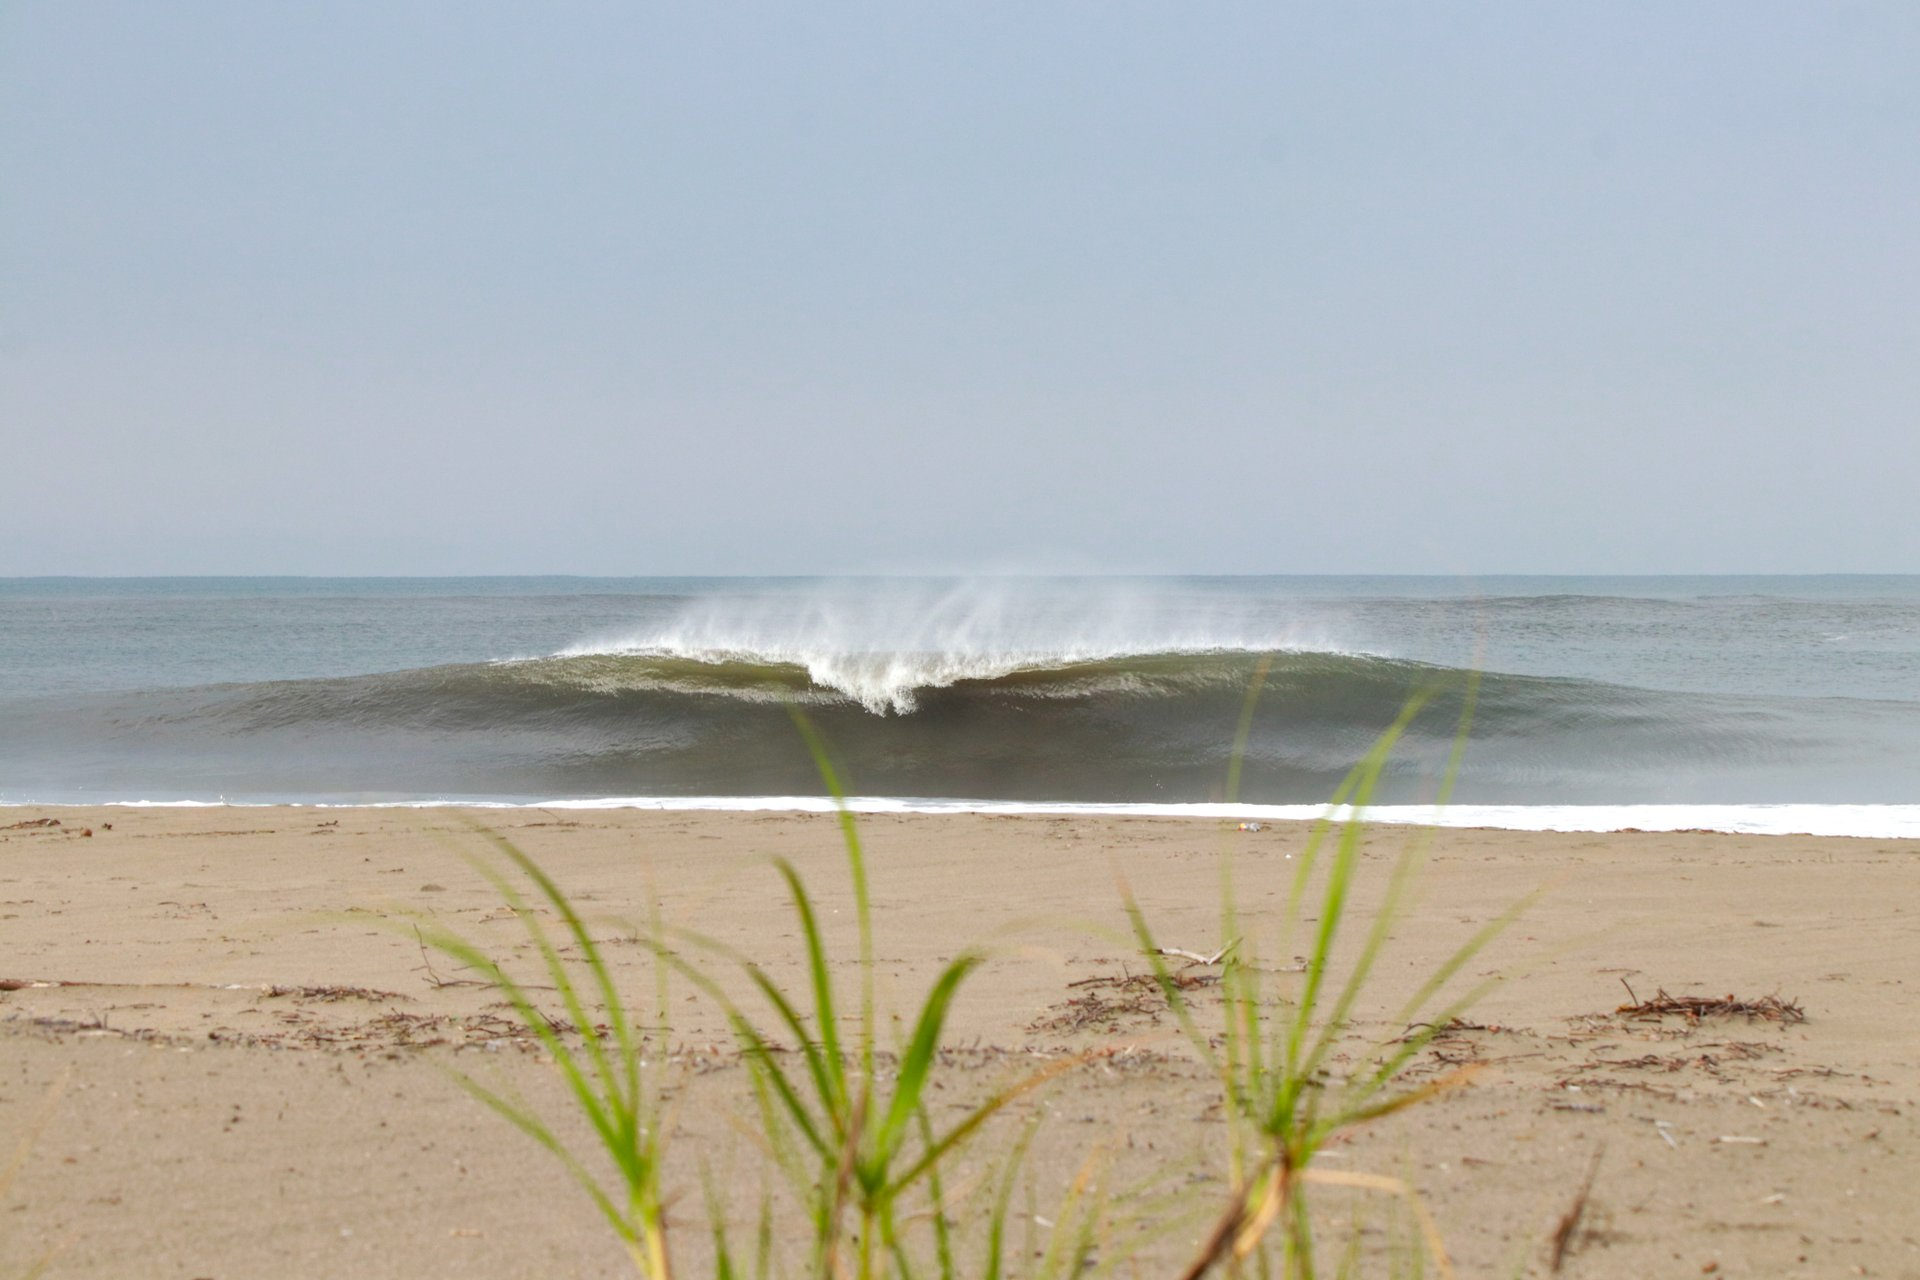 Thunderbomb Surf Camp's photo of The Boom